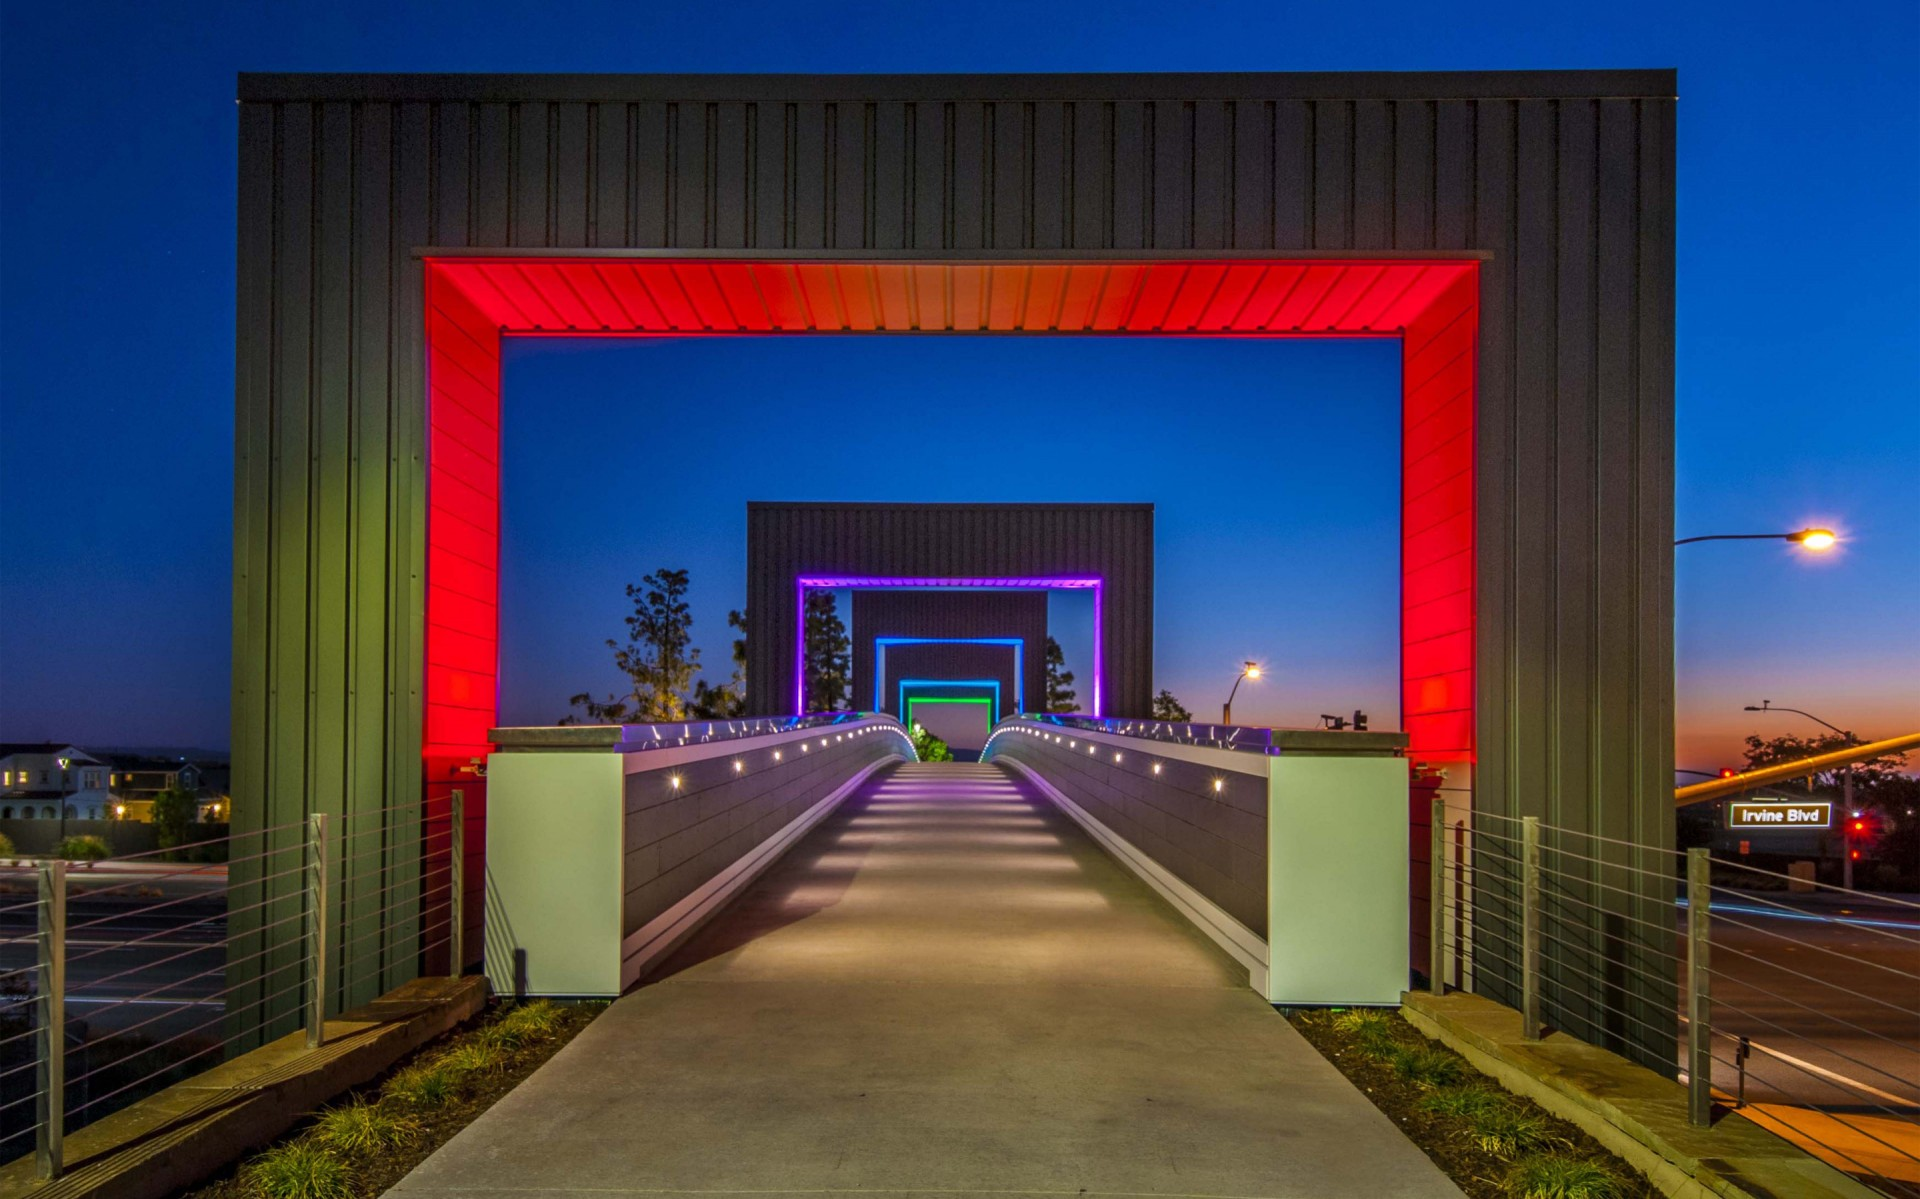 The goal was to accentuate the bridge to highlight it as a unique structure. – Brad Nelson